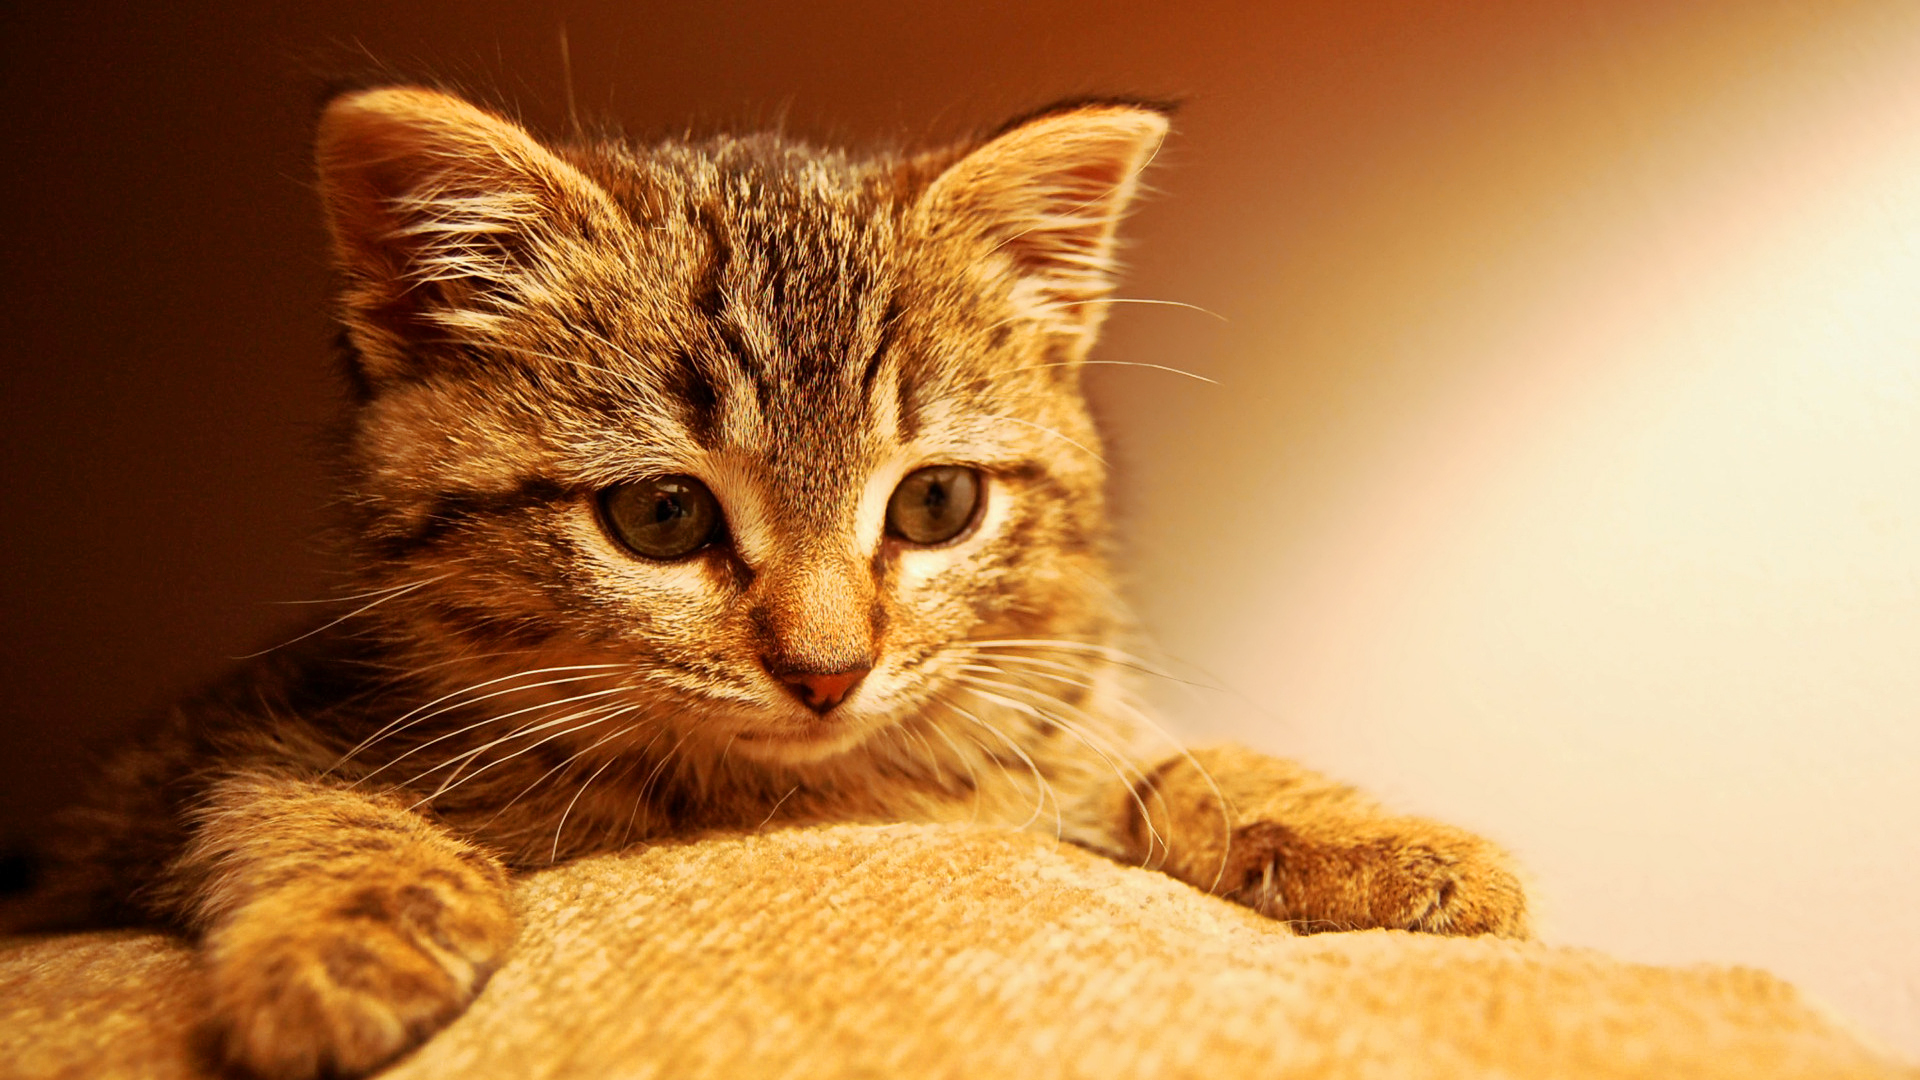 Pictures of Cute Kittes (4)